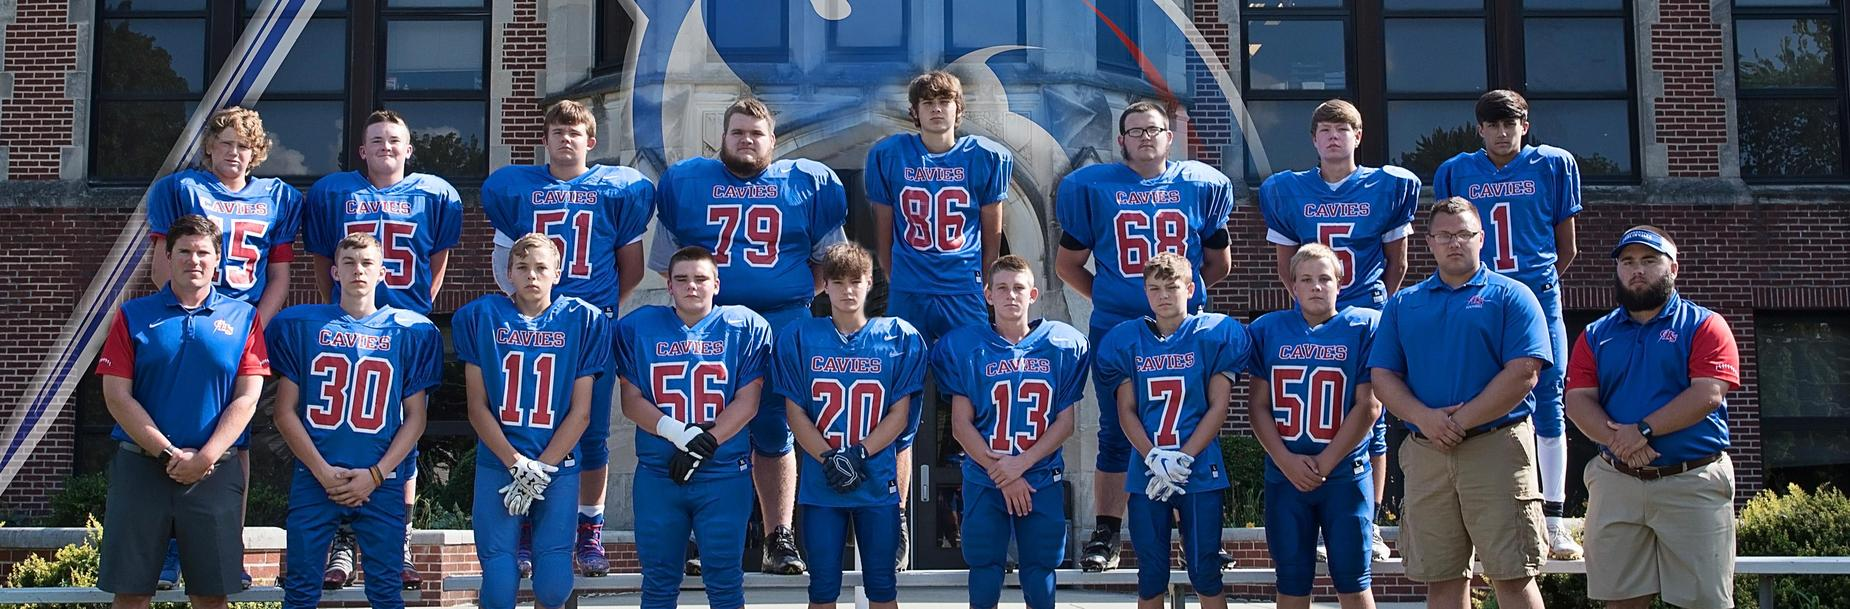 2019-2020 Carlinville High School Freshman Football Team